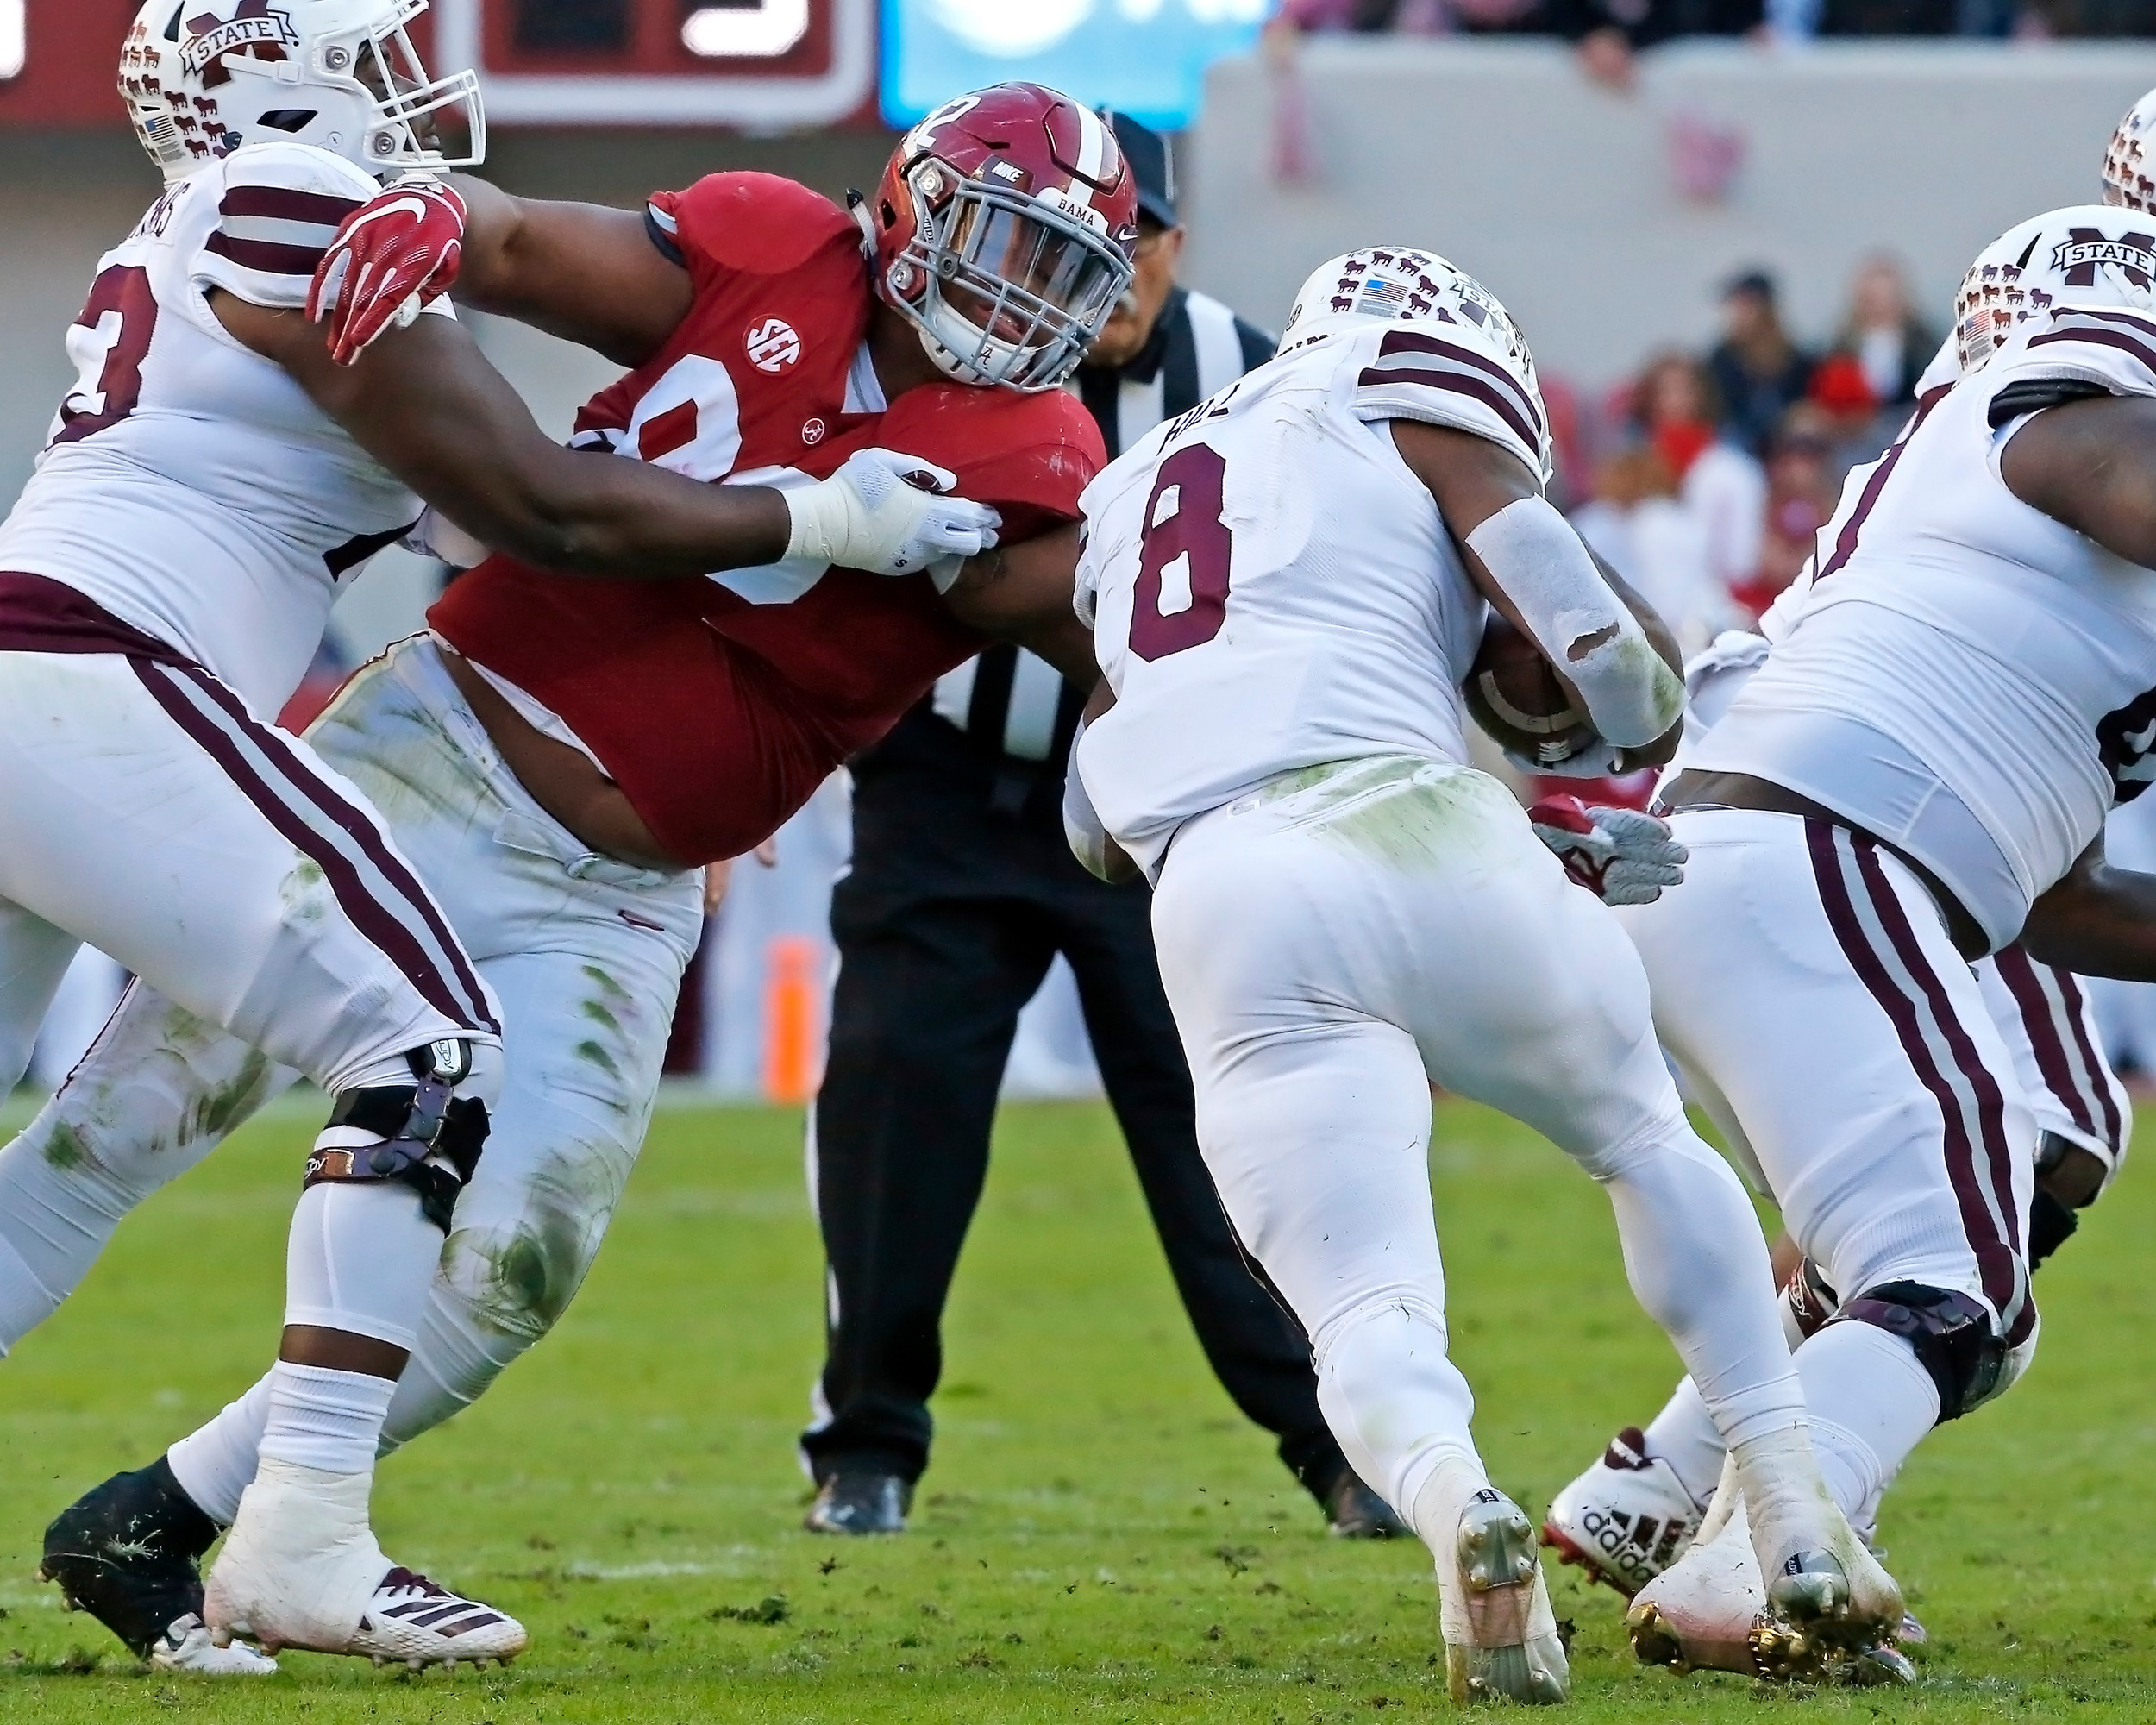 Evene though Mississippi State held Alabama Crimson Tide defensive lineman Quinnen Williams (92), he still made big plays during the game between Mississippi State and the University of Alabama at Bryant-Denny Stadium in Tuscaloosa, Al. Credit: Jason Clark / Daily Mountain Eagle